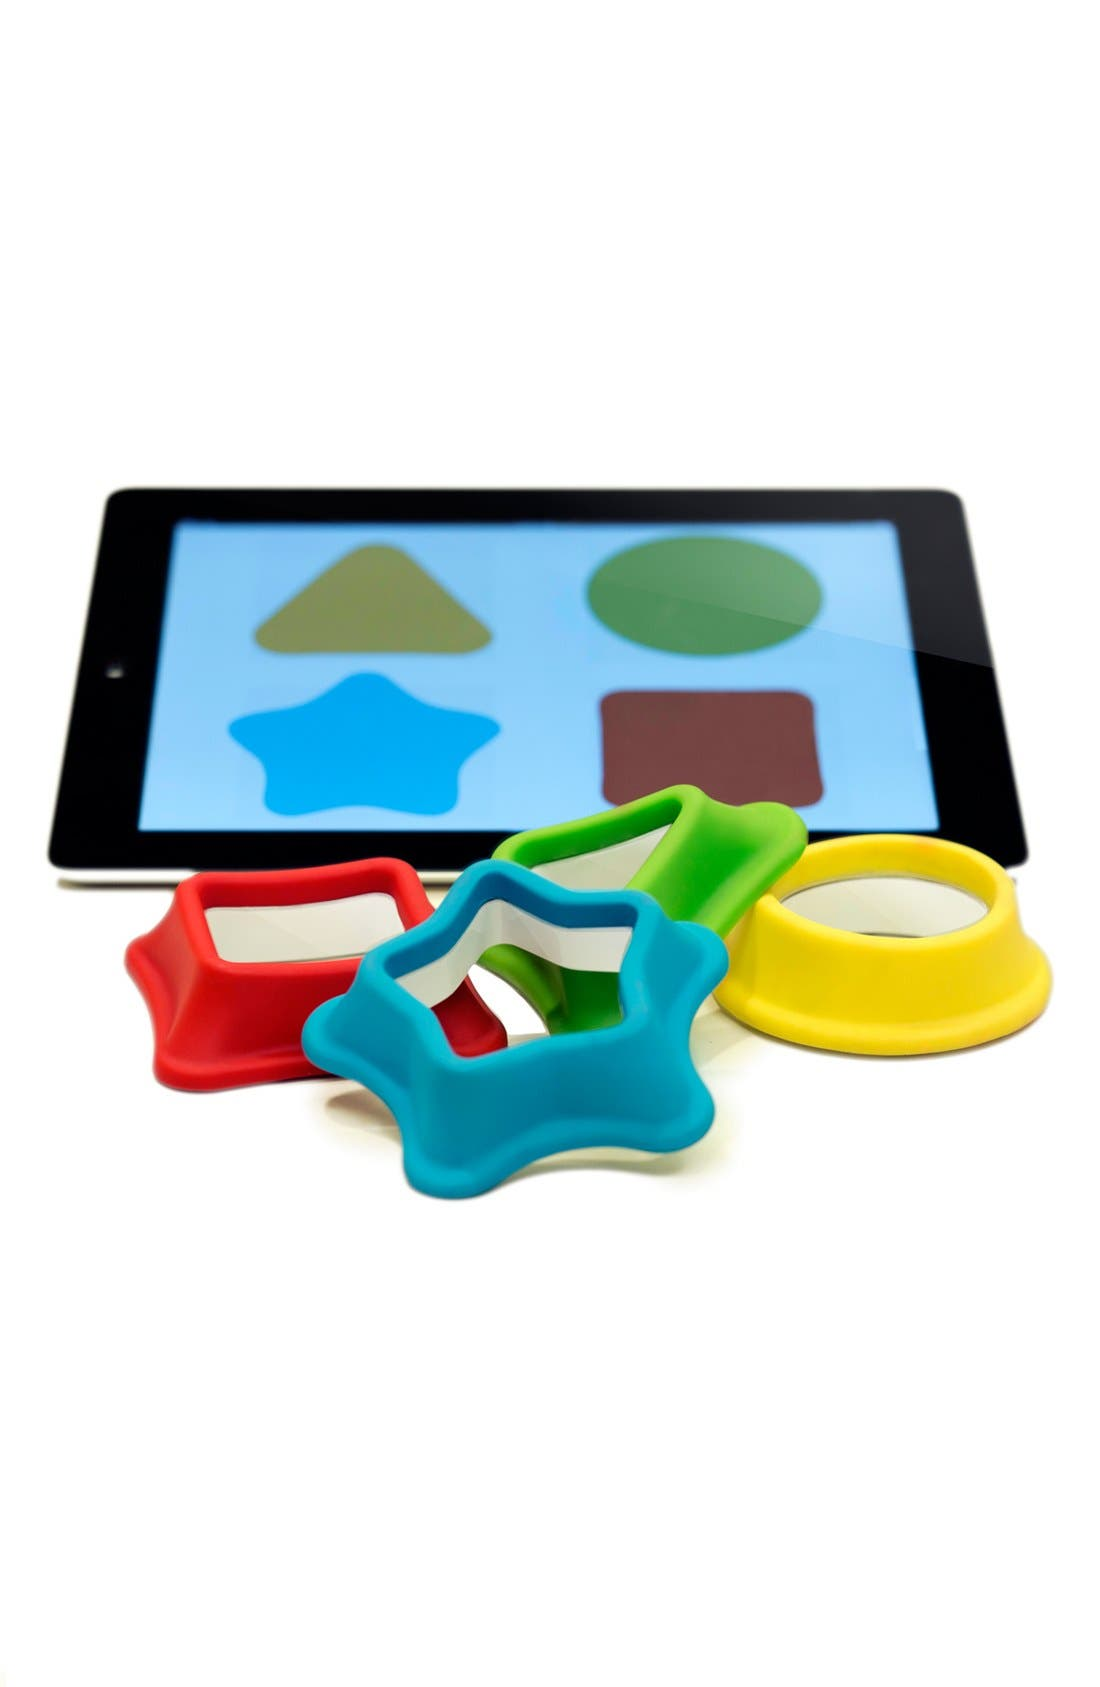 Alternate Image 2  - Tiggly 'Shapes' iPad Learning Toy (Baby)